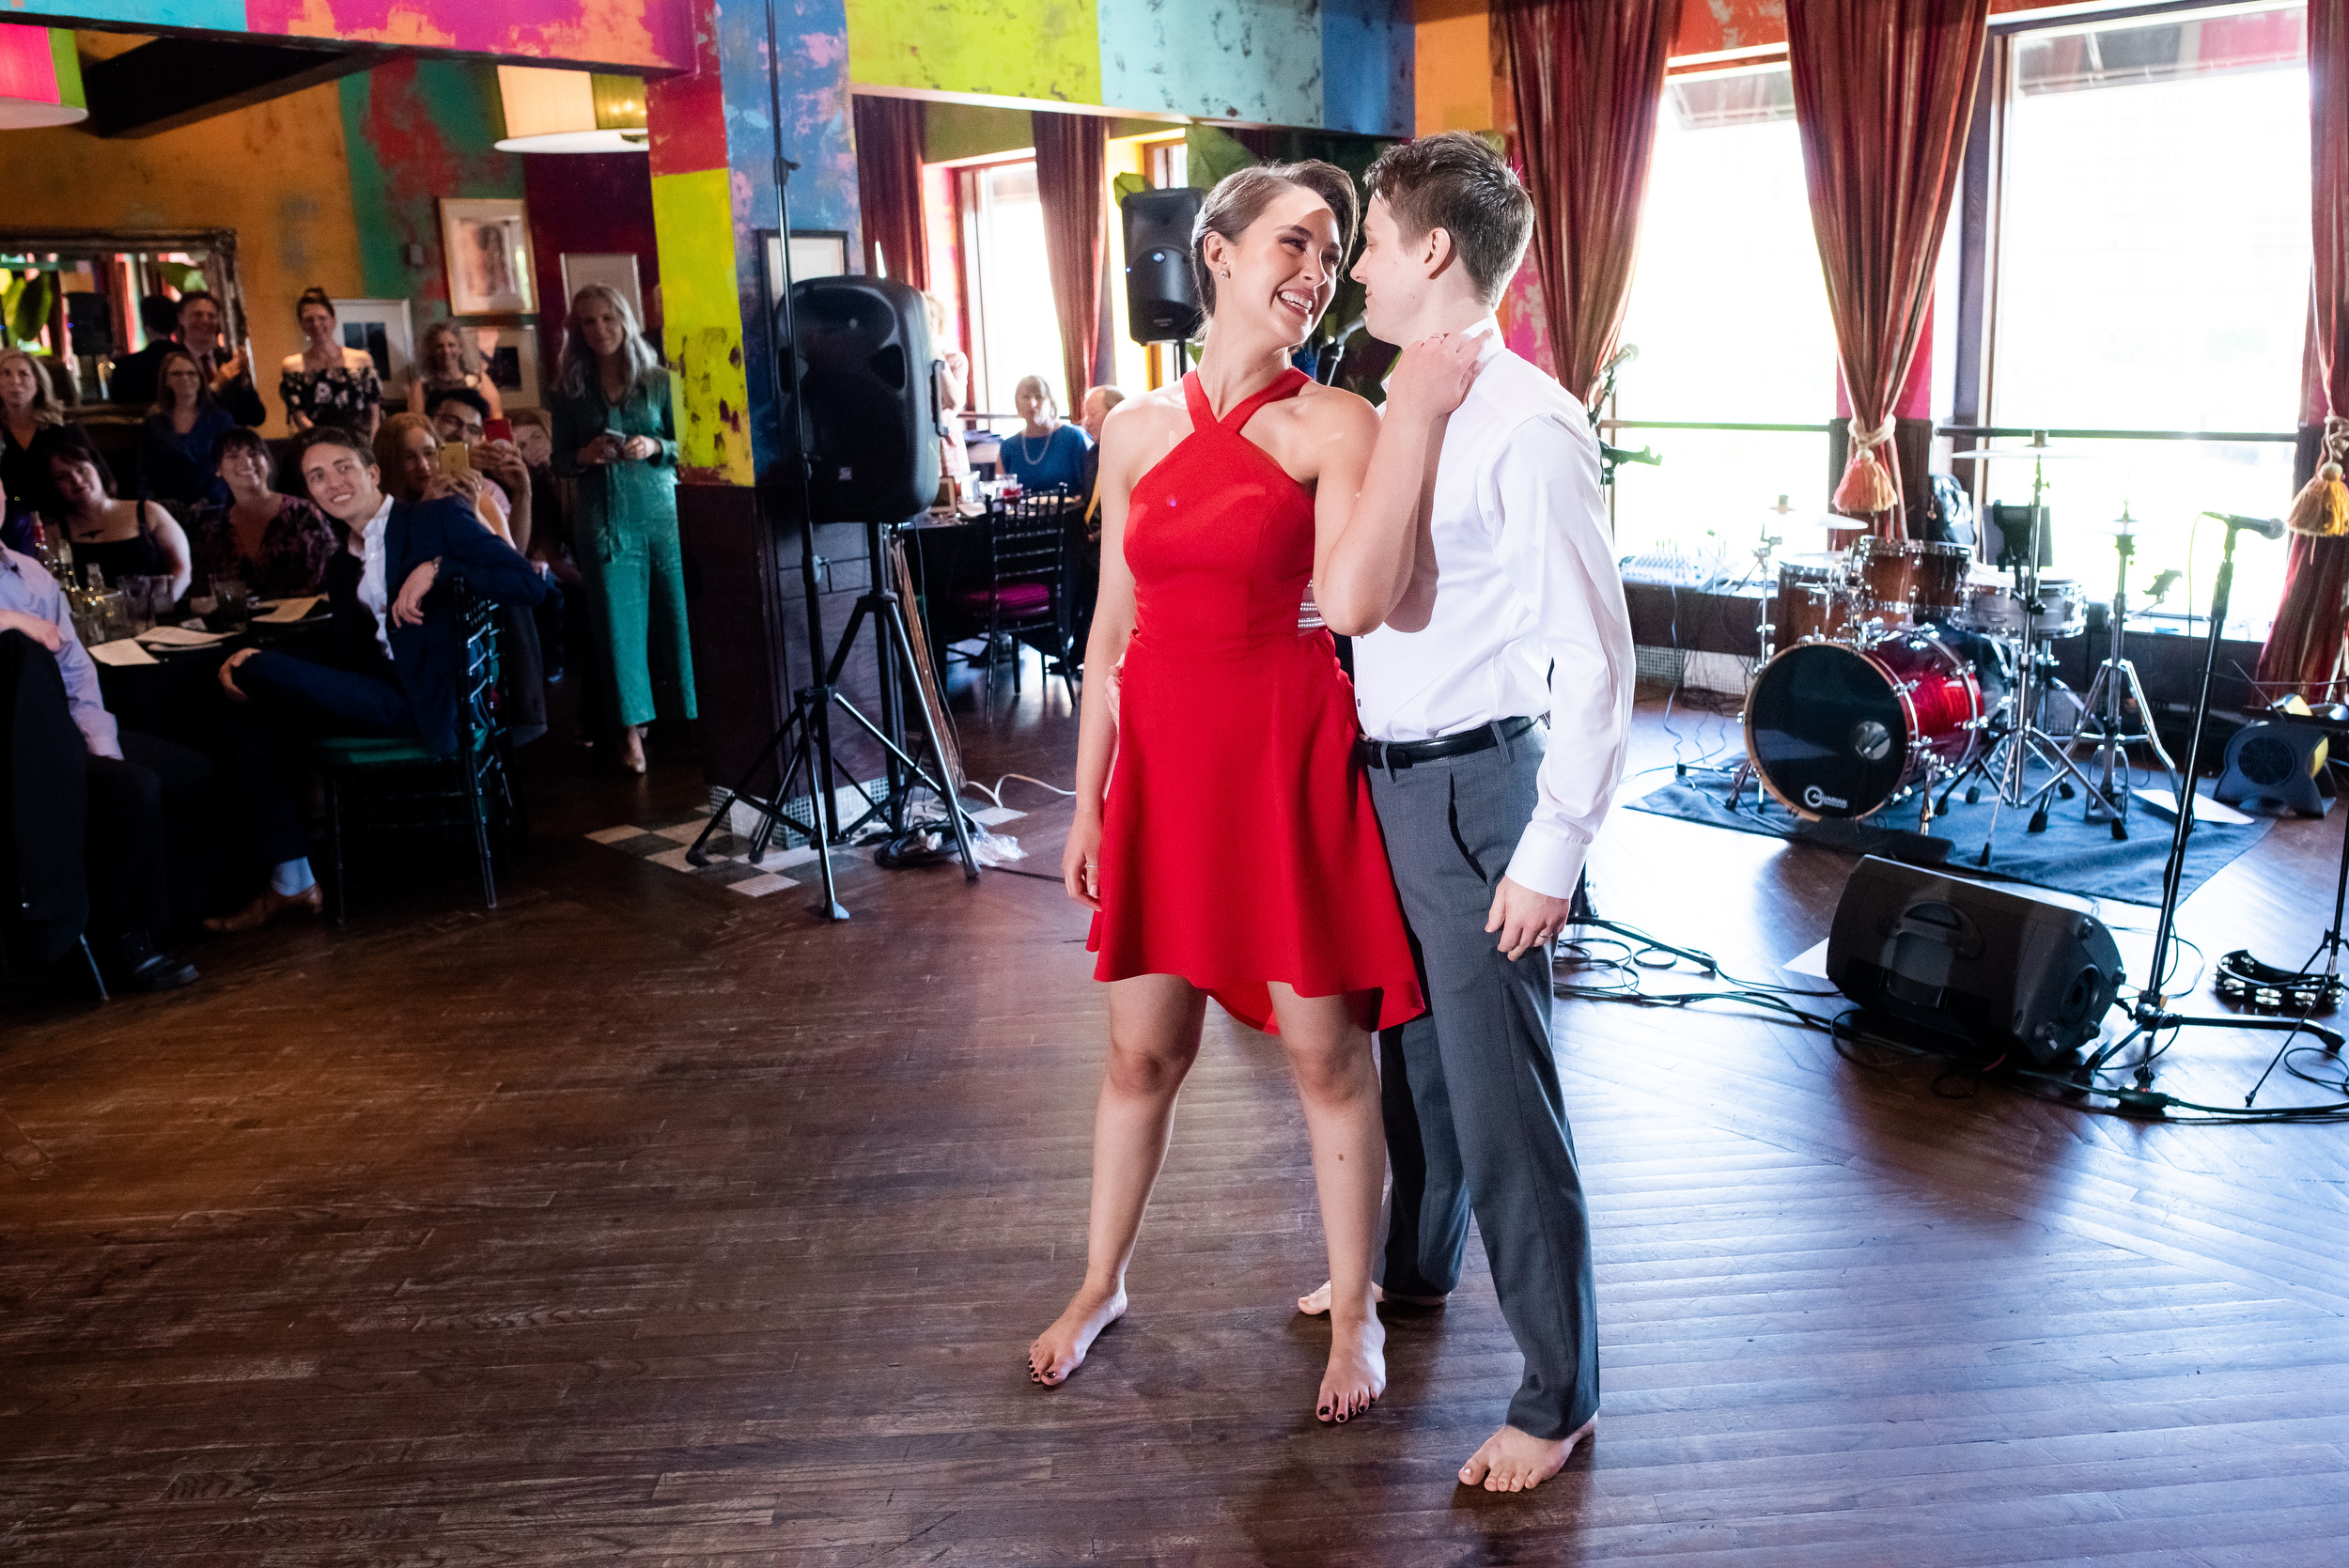 Wedding first dance: Carnivale Chicago wedding captured by J Brown Photography